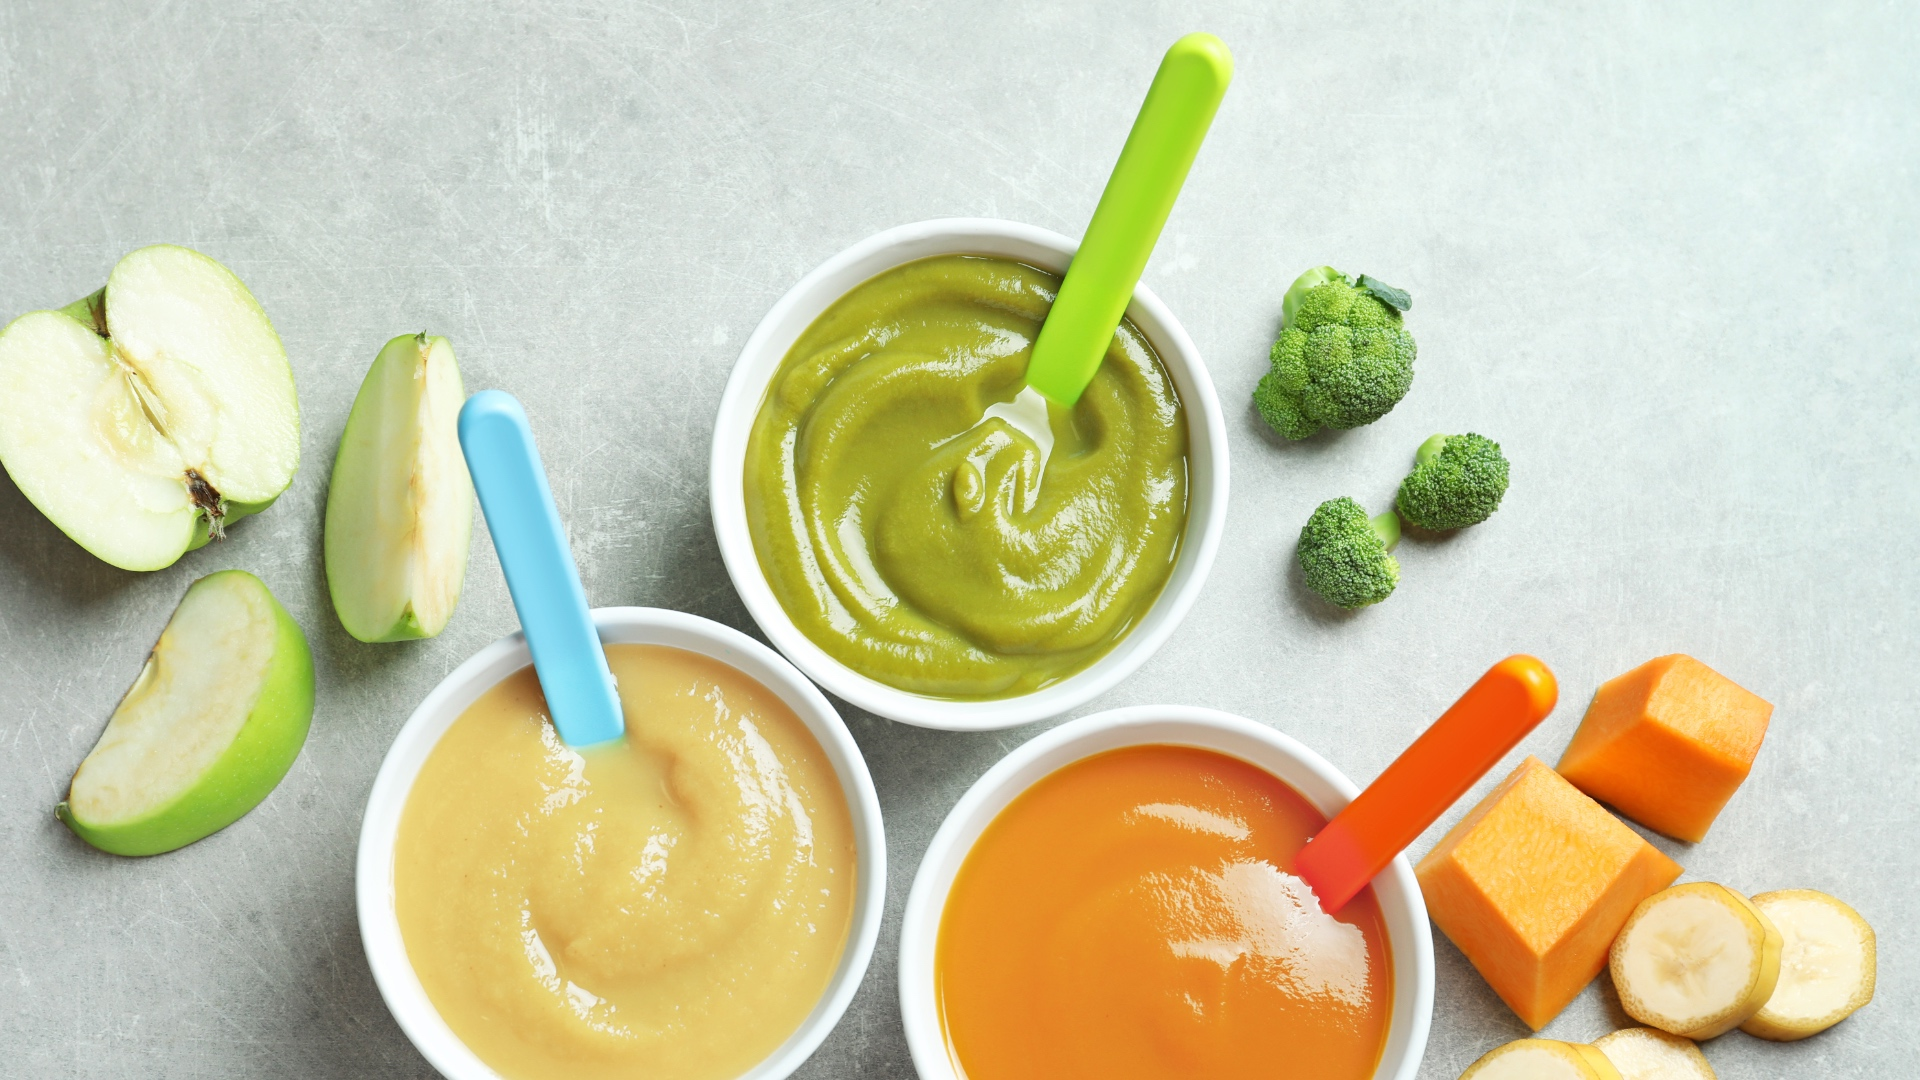 The Best Organic Baby Foods to Nourish Your Little One Right – SheKnows